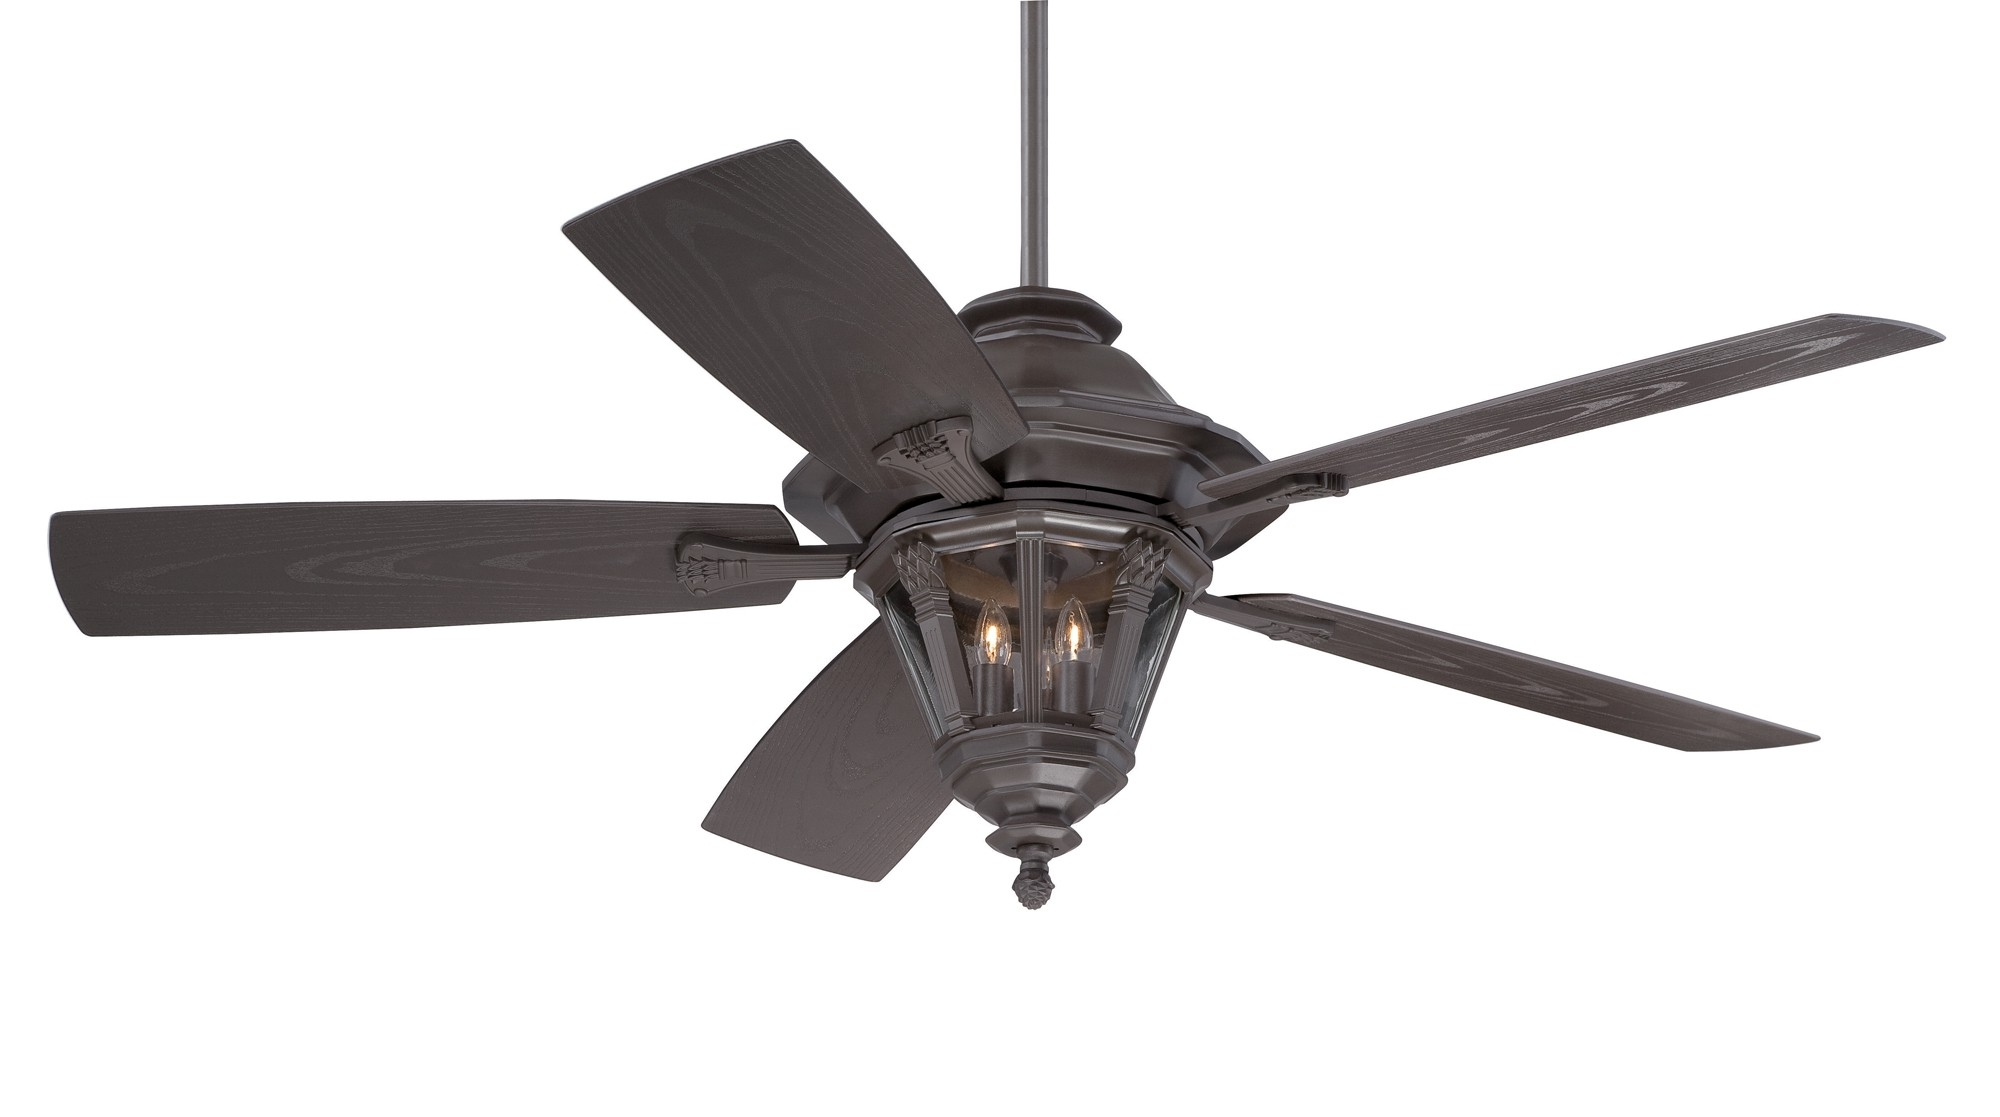 Top 10 Unique Outdoor Ceiling Fans 2018 Warisan Lighting, Best Throughout Widely Used Outdoor Ceiling Fans With Lantern Light (Gallery 1 of 20)